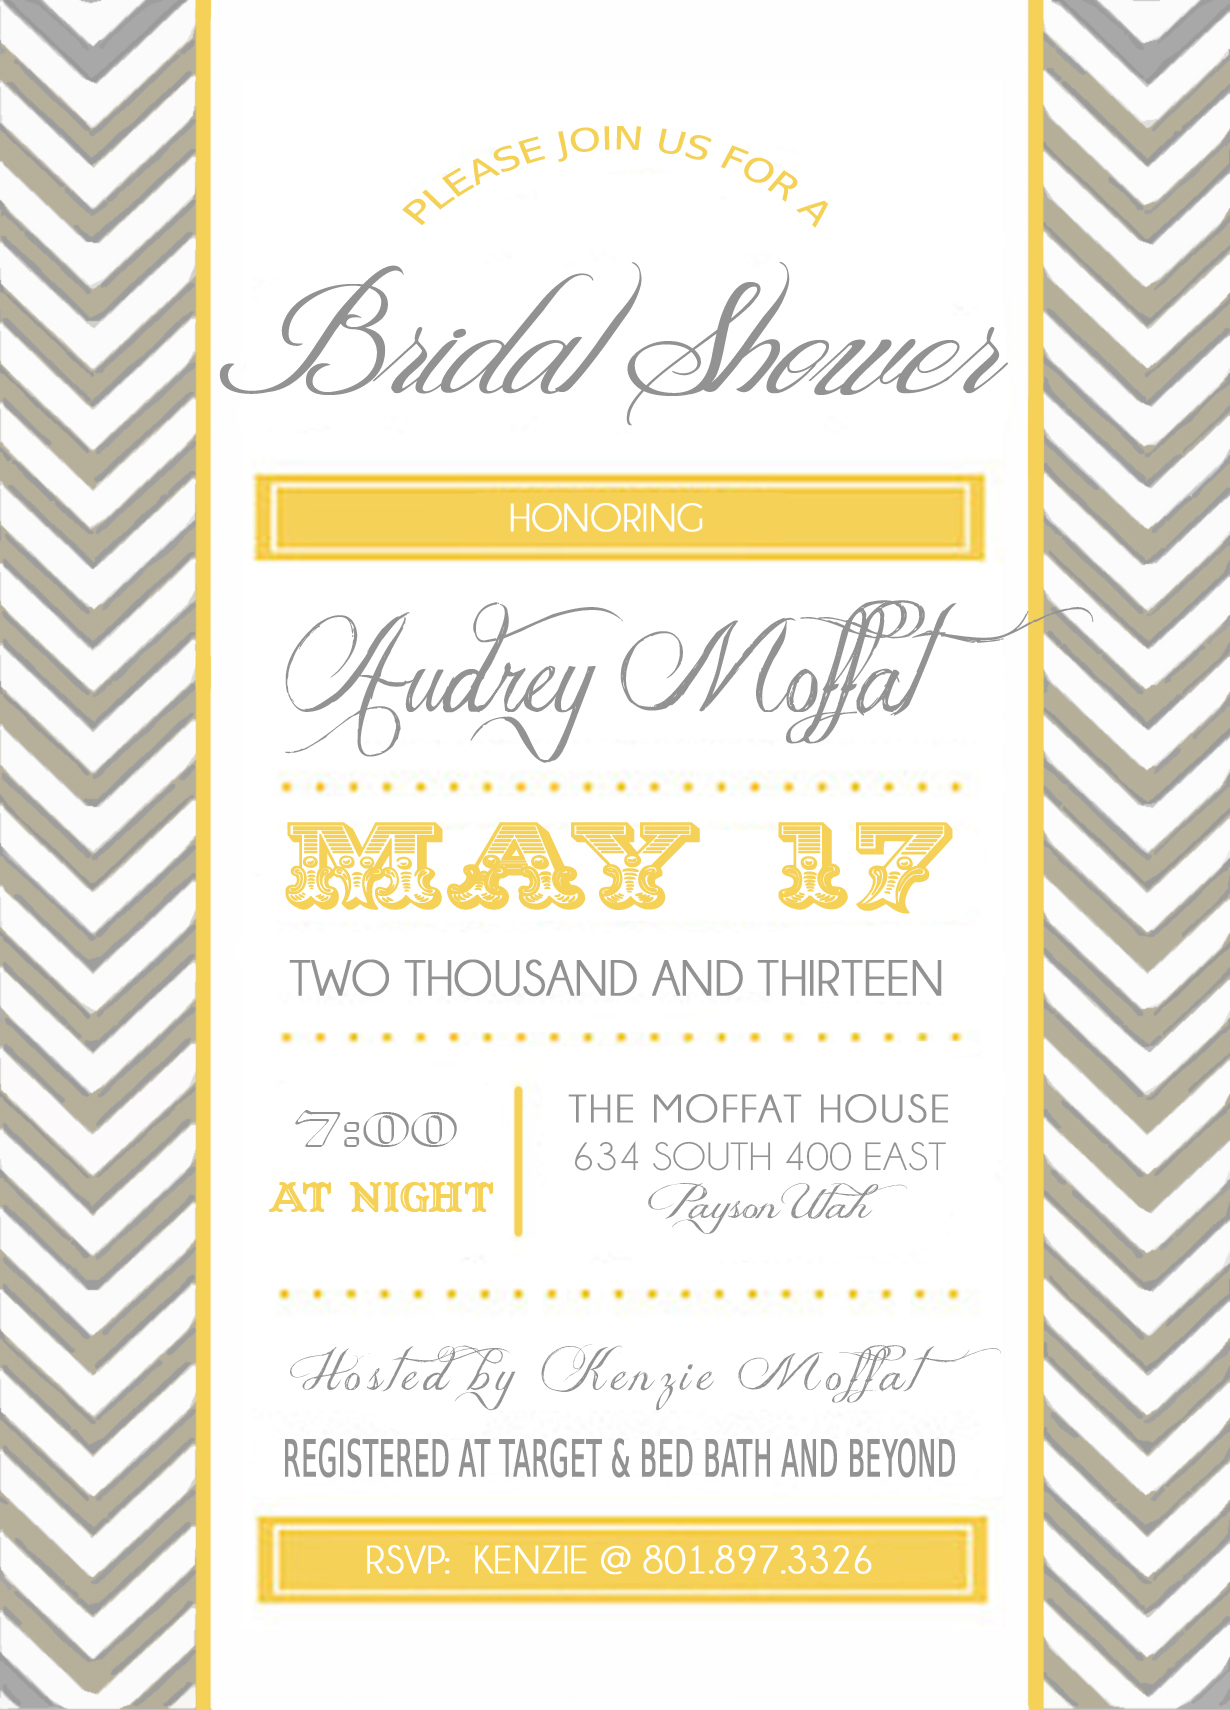 the bridal shower invite.jpg